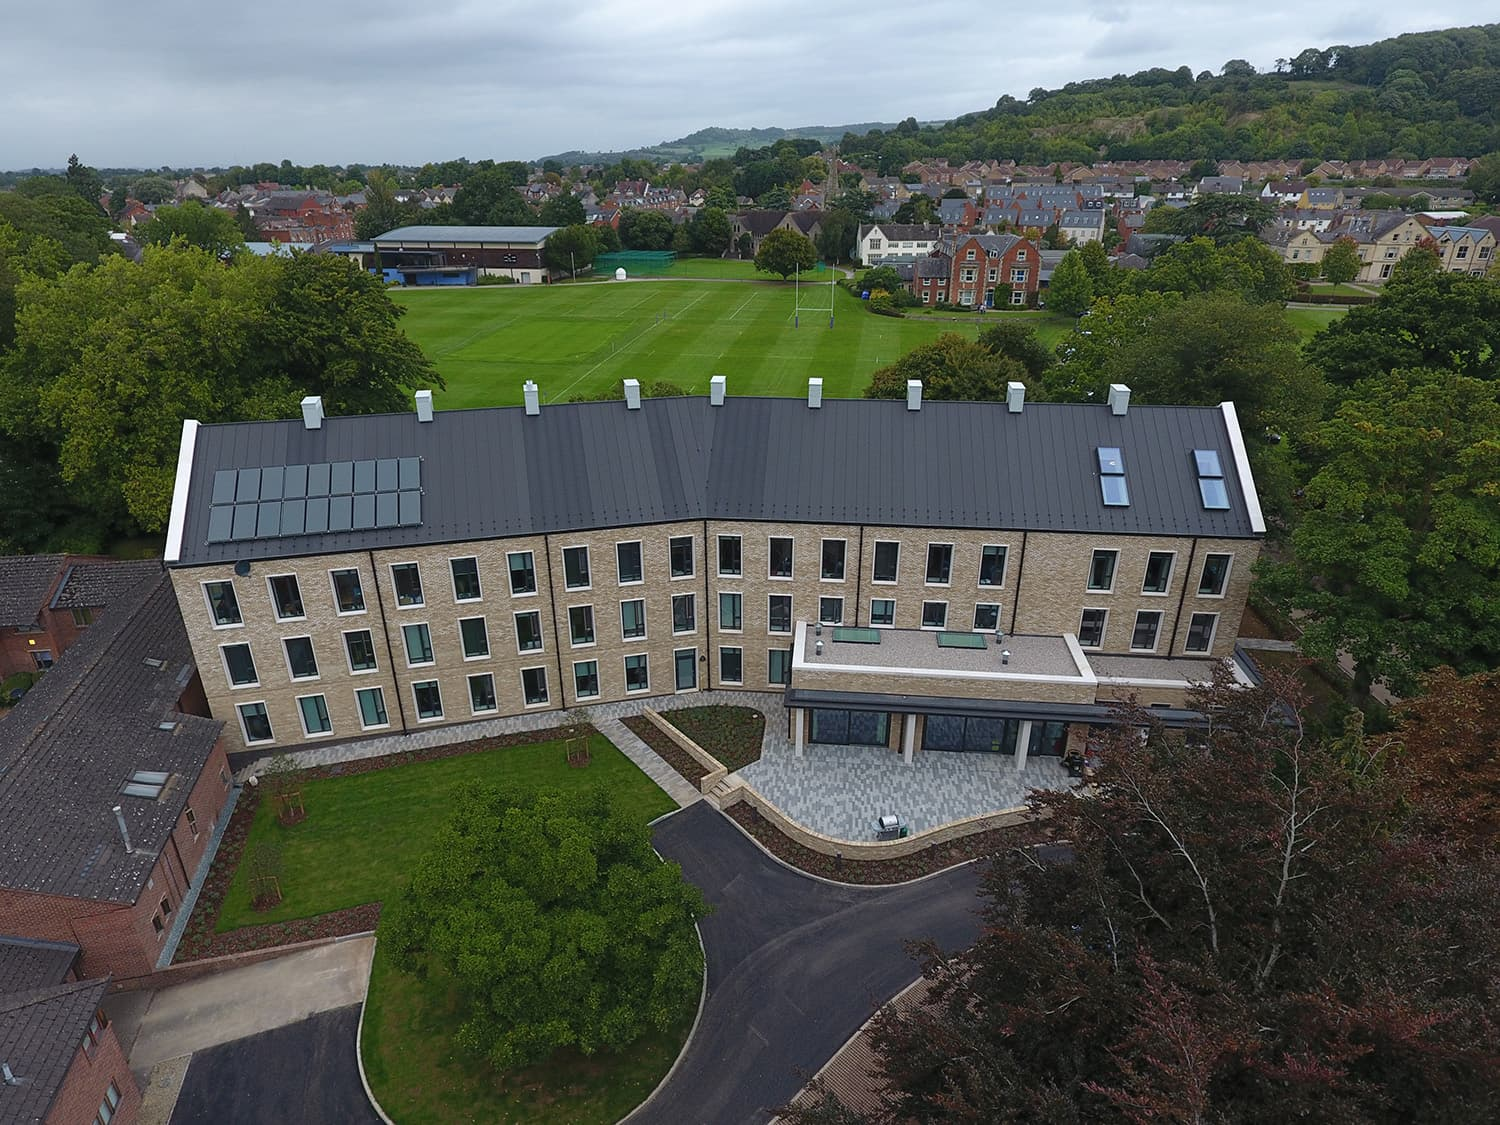 Wycliffe Boarding House Aerial View